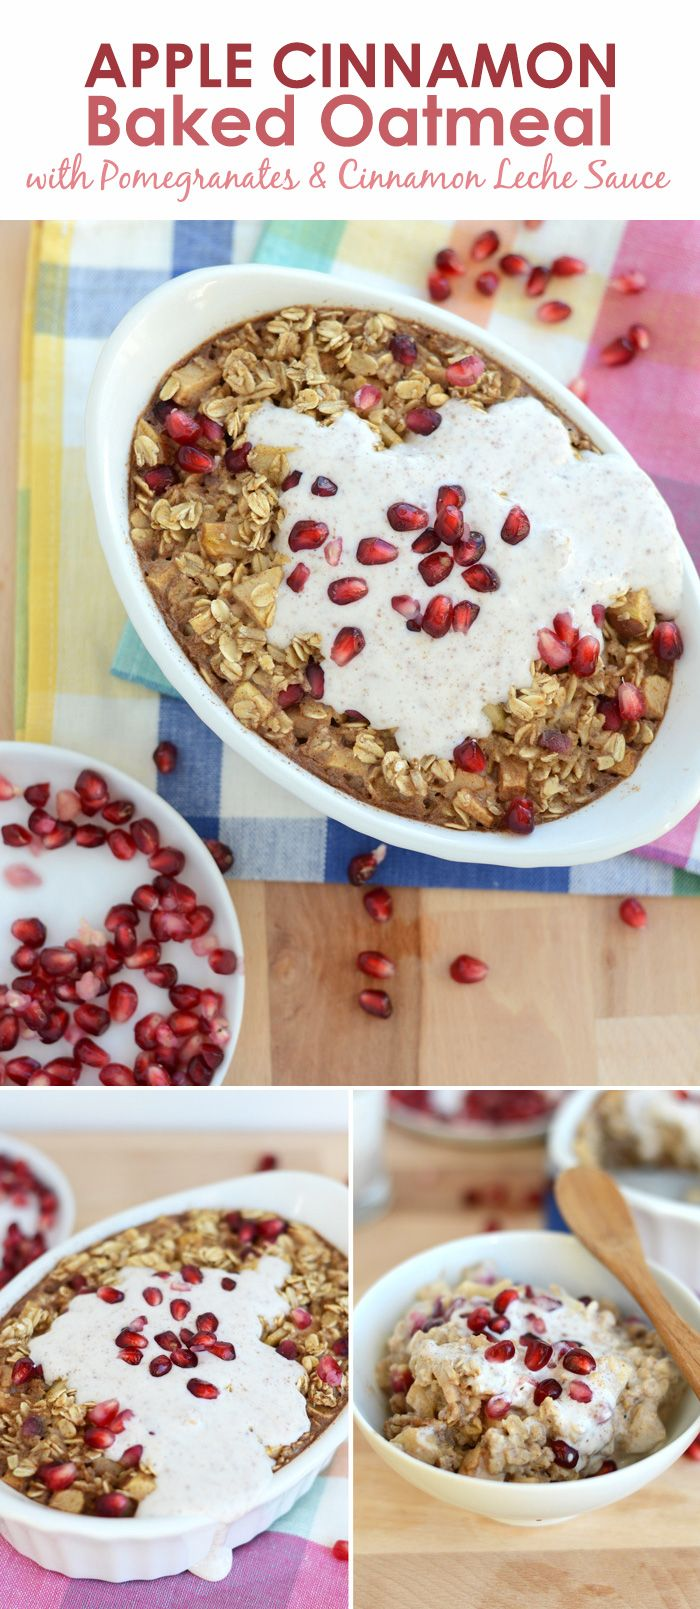 Apple Cinnamon Baked Oatmeal with Pomegranates and Cinnamon Leche Sauce | FitFoodieFinds.com